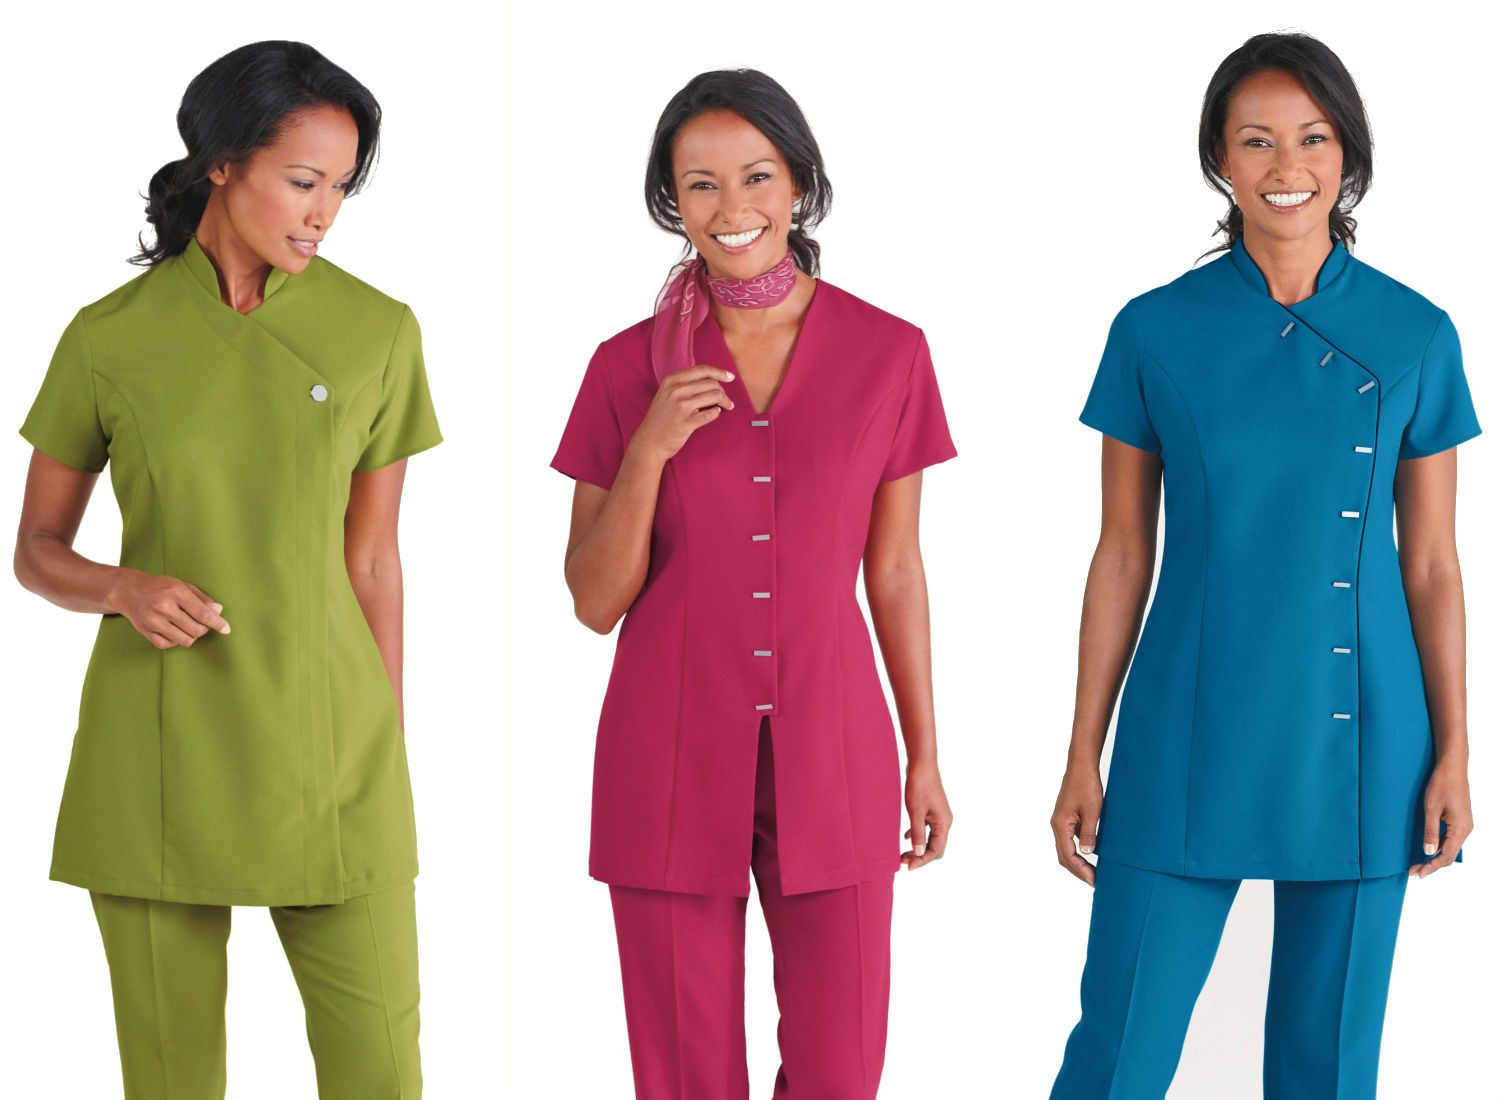 Spa uniform spa uniforms pinterest for Spa uniform uae